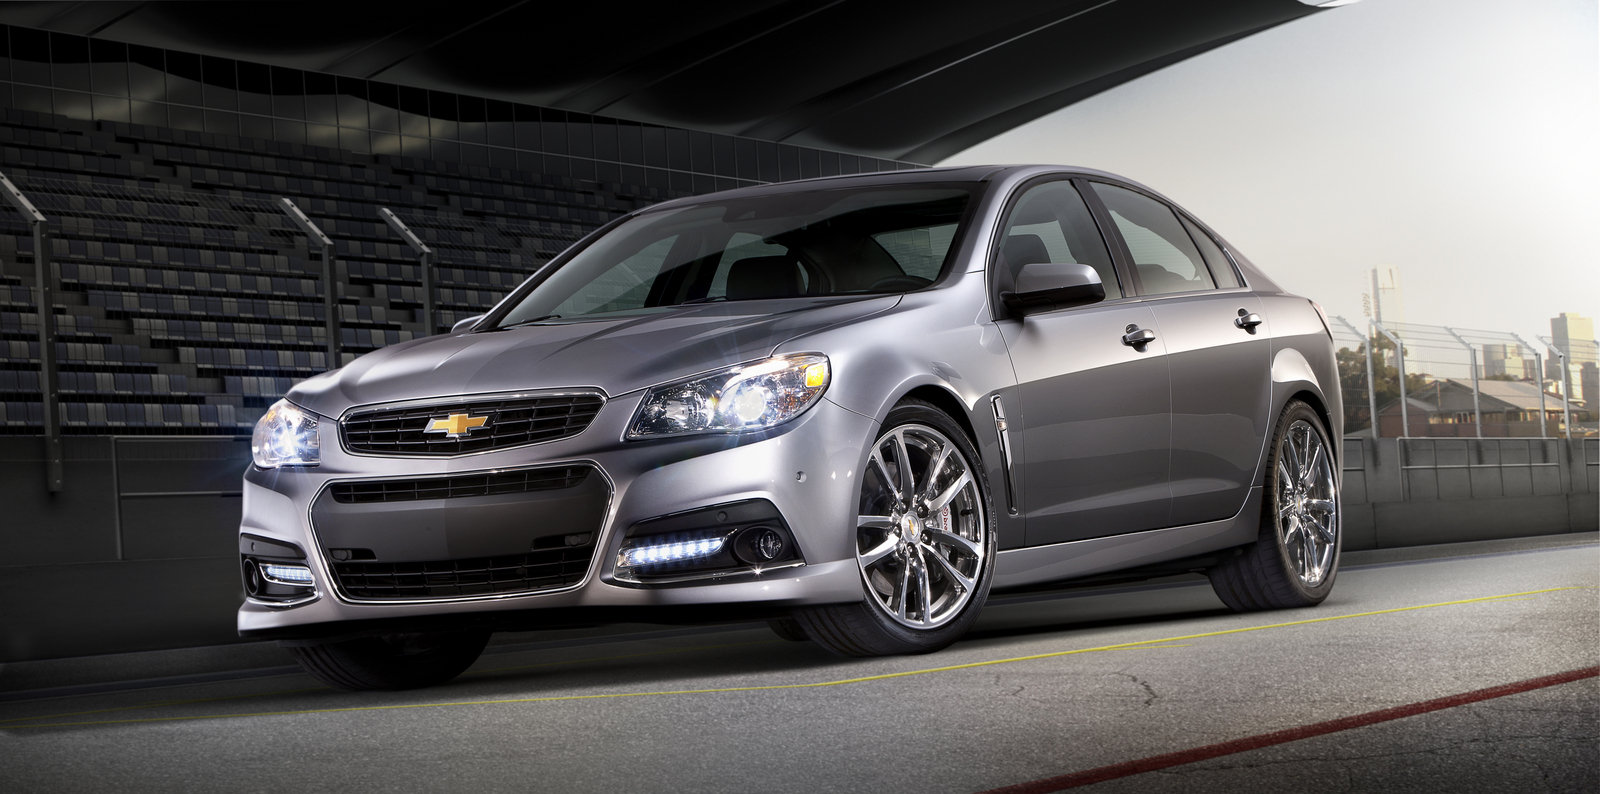 Coupe 2015 chevy ss coupe : 2014 Chevrolet SS Performance Review - Top Speed